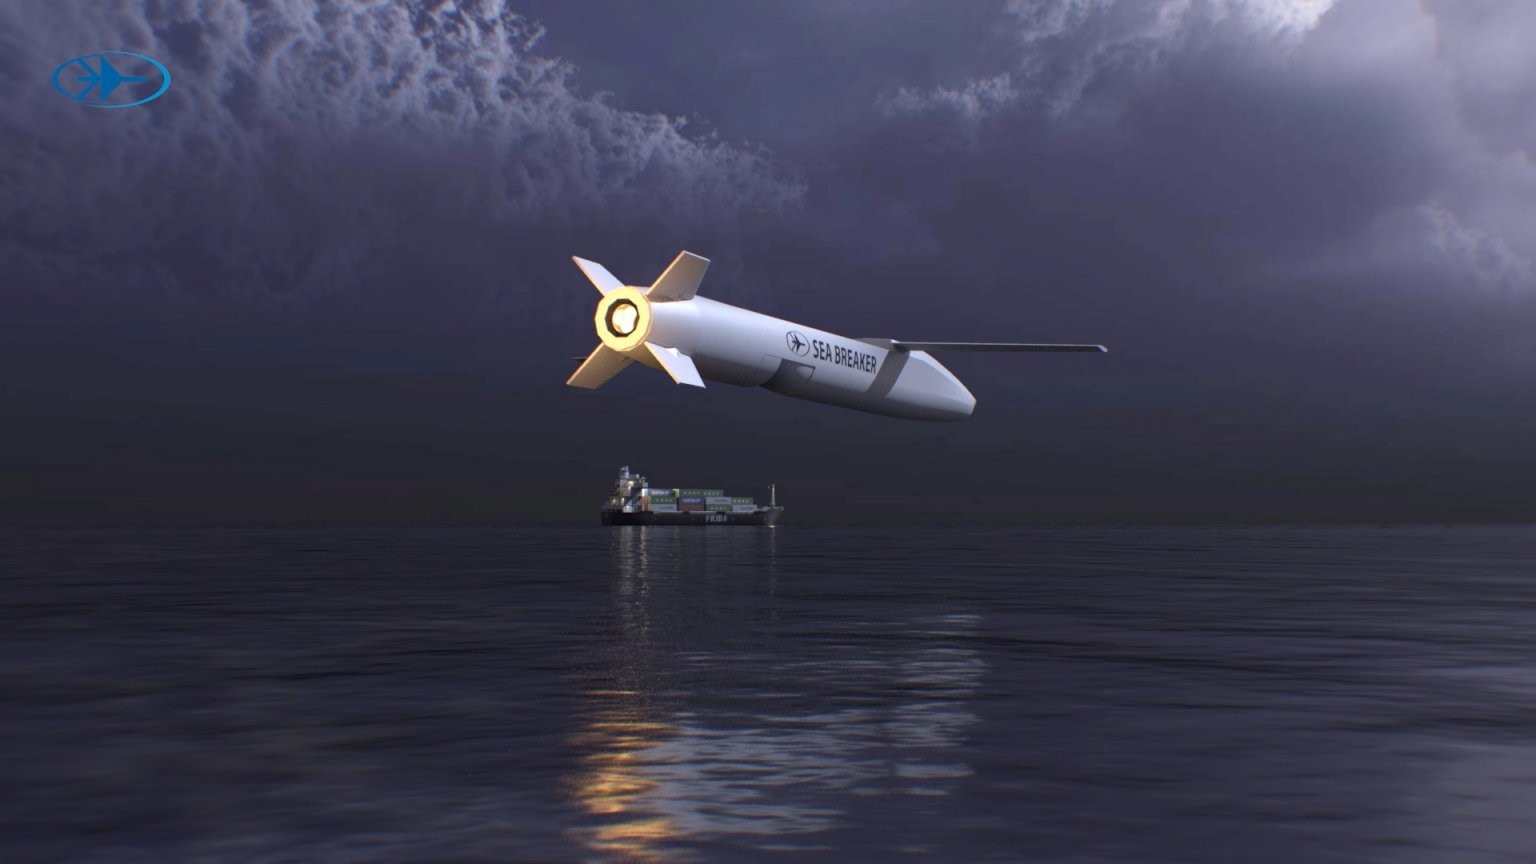 autonomous-long-range-missile-system-will-blast-targets-from-186-miles-away